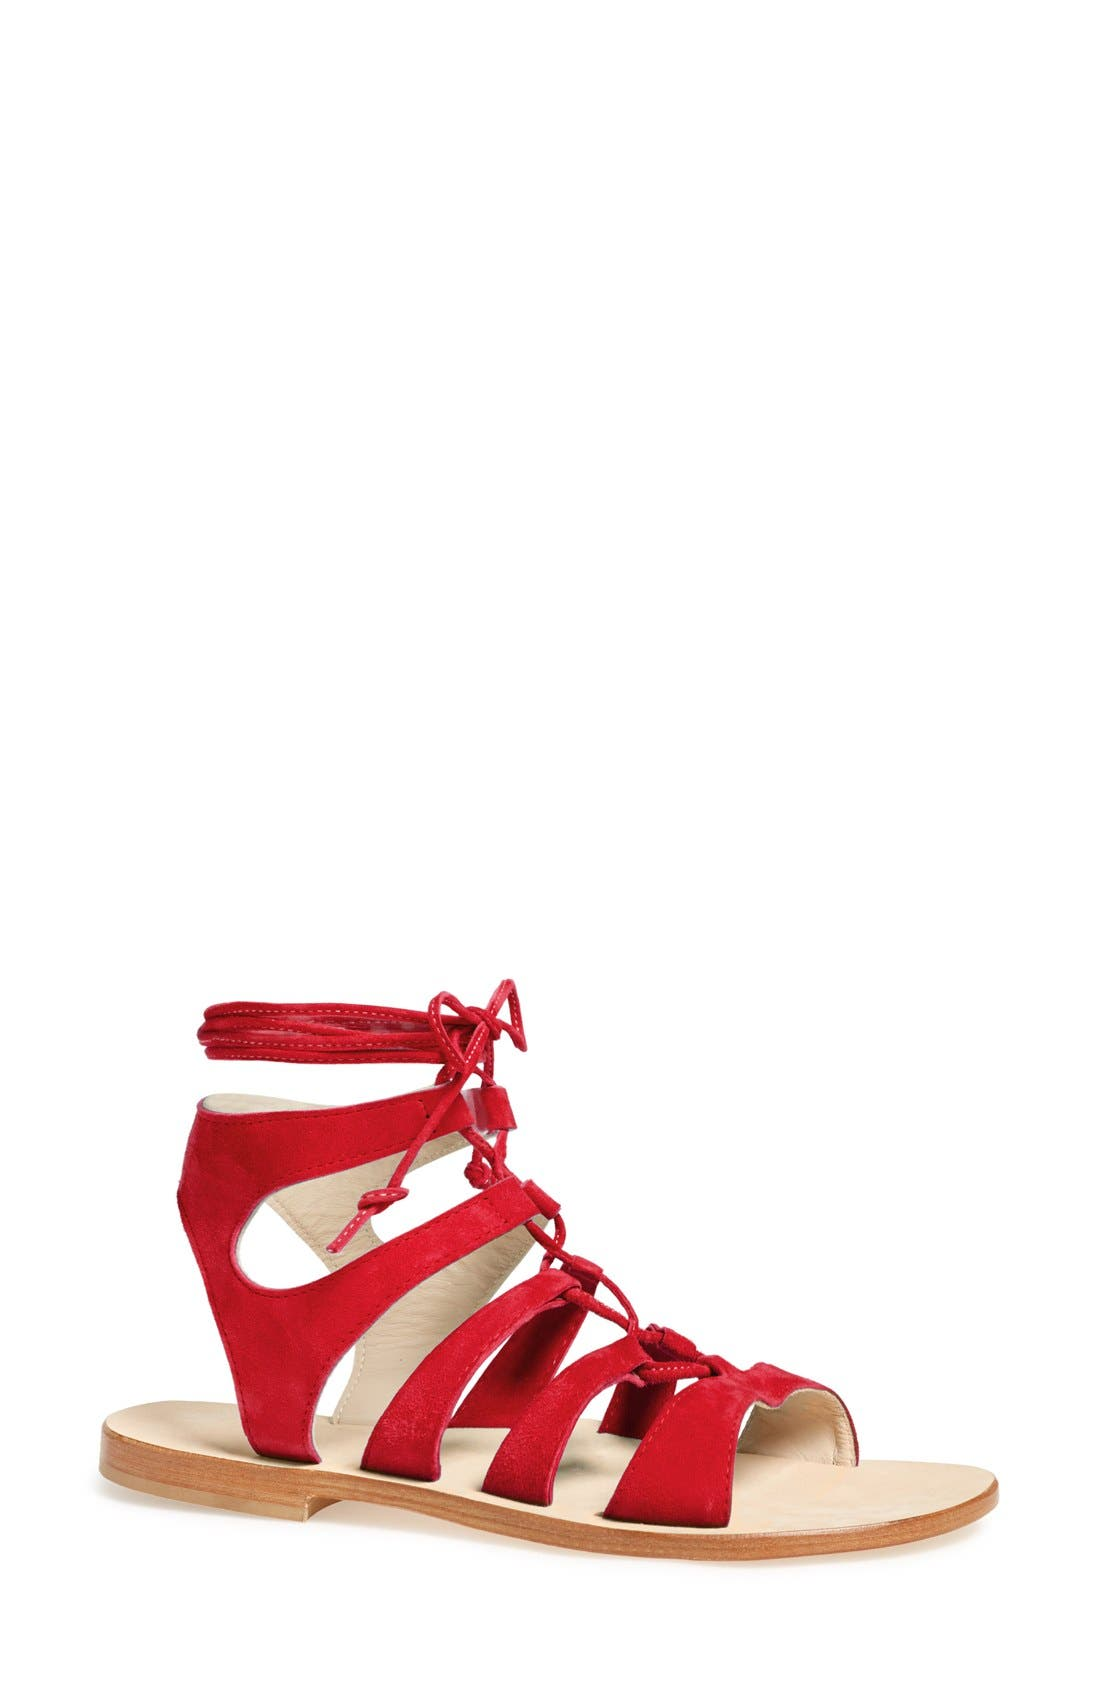 Alternate Image 1 Selected - Cornetti 'Recommone' Gladiator Sandal (Women)